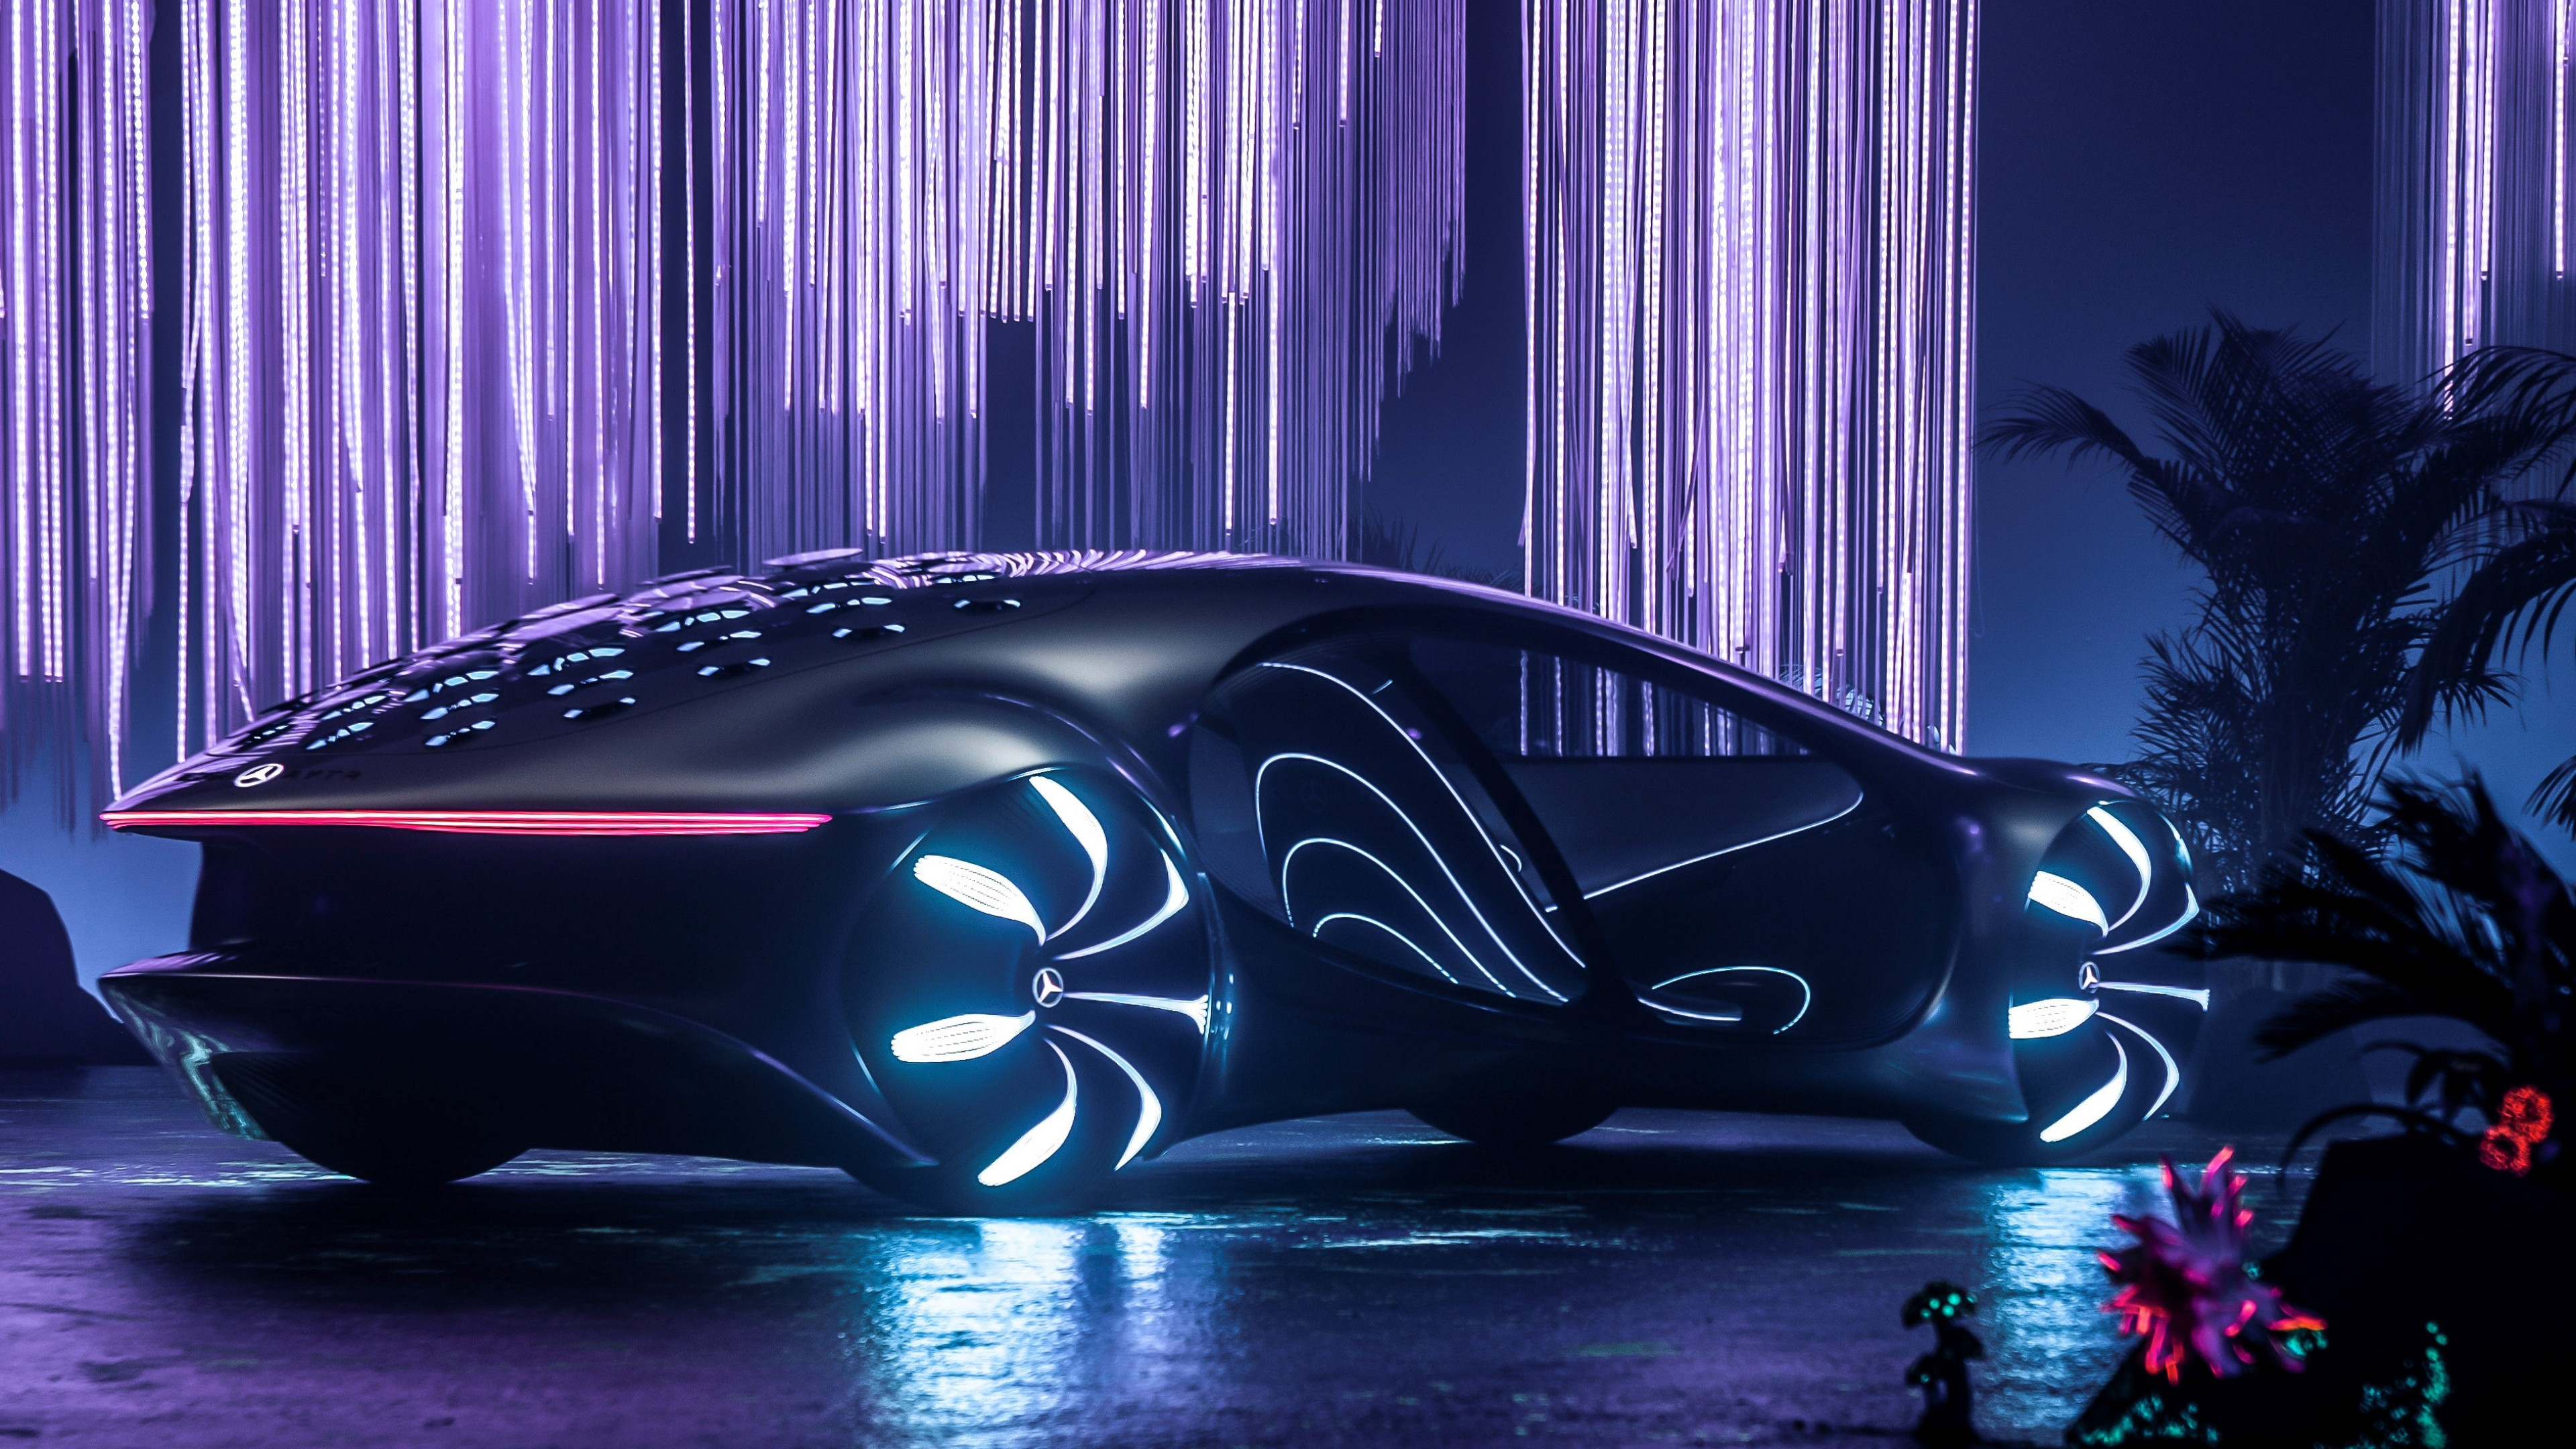 Wallpaper Mercedes Benz Vision Avtr Ces 2020 Electric Cars 4k Cars Bikes 22438